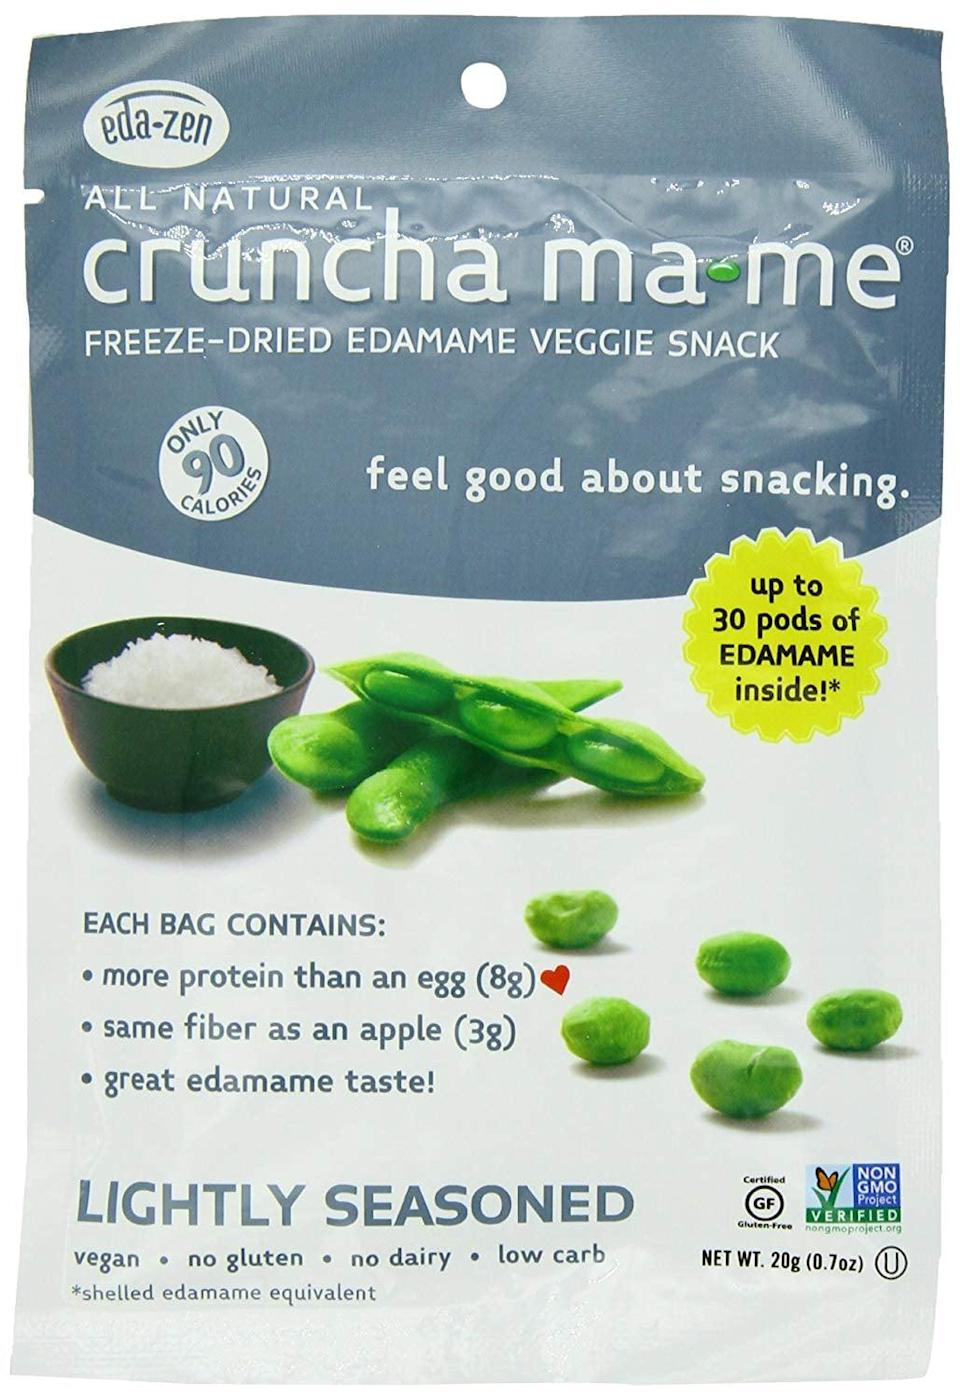 """<p>We could munch on these salty <a href=""""https://www.popsugar.com/buy/Eda-Zen-Cruncha-Ma-Me-Edamame-Veggie-Snacks-410815?p_name=Eda-Zen%20Cruncha%20Ma-Me%20Edamame%20Veggie%20Snacks&retailer=amazon.com&pid=410815&price=13&evar1=fit%3Aus&evar9=45900554&evar98=https%3A%2F%2Fwww.popsugar.com%2Ffitness%2Fphoto-gallery%2F45900554%2Fimage%2F45900691%2FEda-Zen-Cruncha-Ma-Me-Edamame-Veggie-Snack&list1=shopping%2Camazon%2Chealthy%20snacks%2Csnacks%2Clow%20calorie%2Clow-carb&prop13=mobile&pdata=1"""" class=""""link rapid-noclick-resp"""" rel=""""nofollow noopener"""" target=""""_blank"""" data-ylk=""""slk:Eda-Zen Cruncha Ma-Me Edamame Veggie Snacks"""">Eda-Zen Cruncha Ma-Me Edamame Veggie Snacks</a> ($13 for eight) all day long.</p>"""